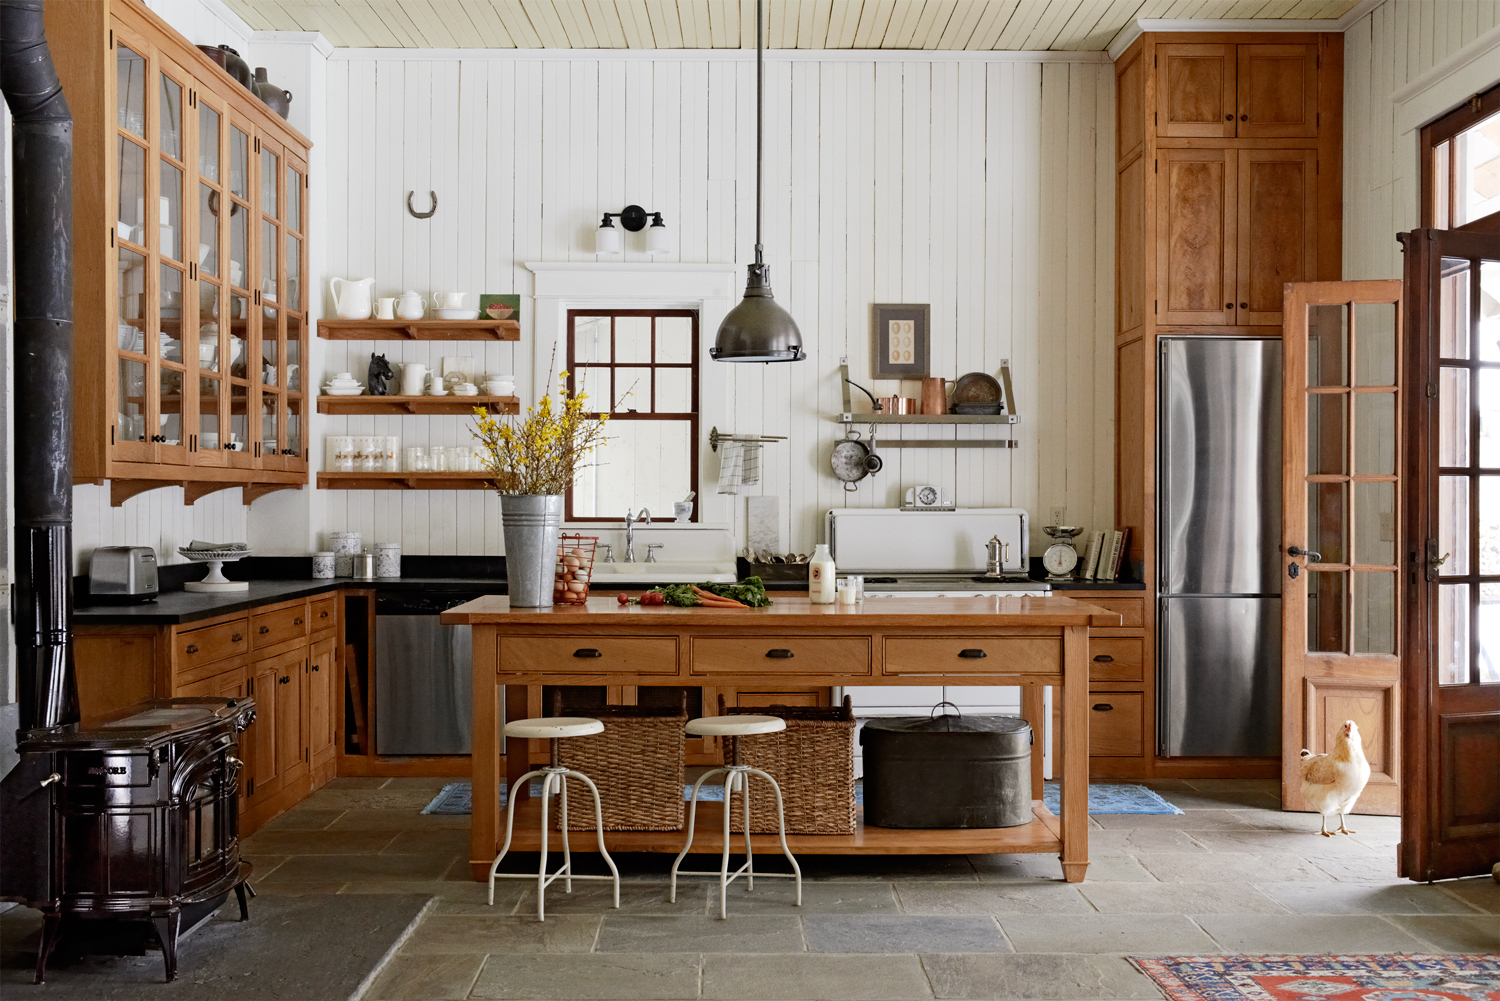 100+ Kitchen Design Ideas - Pictures of Country Kitchen Decorating  Inspiration